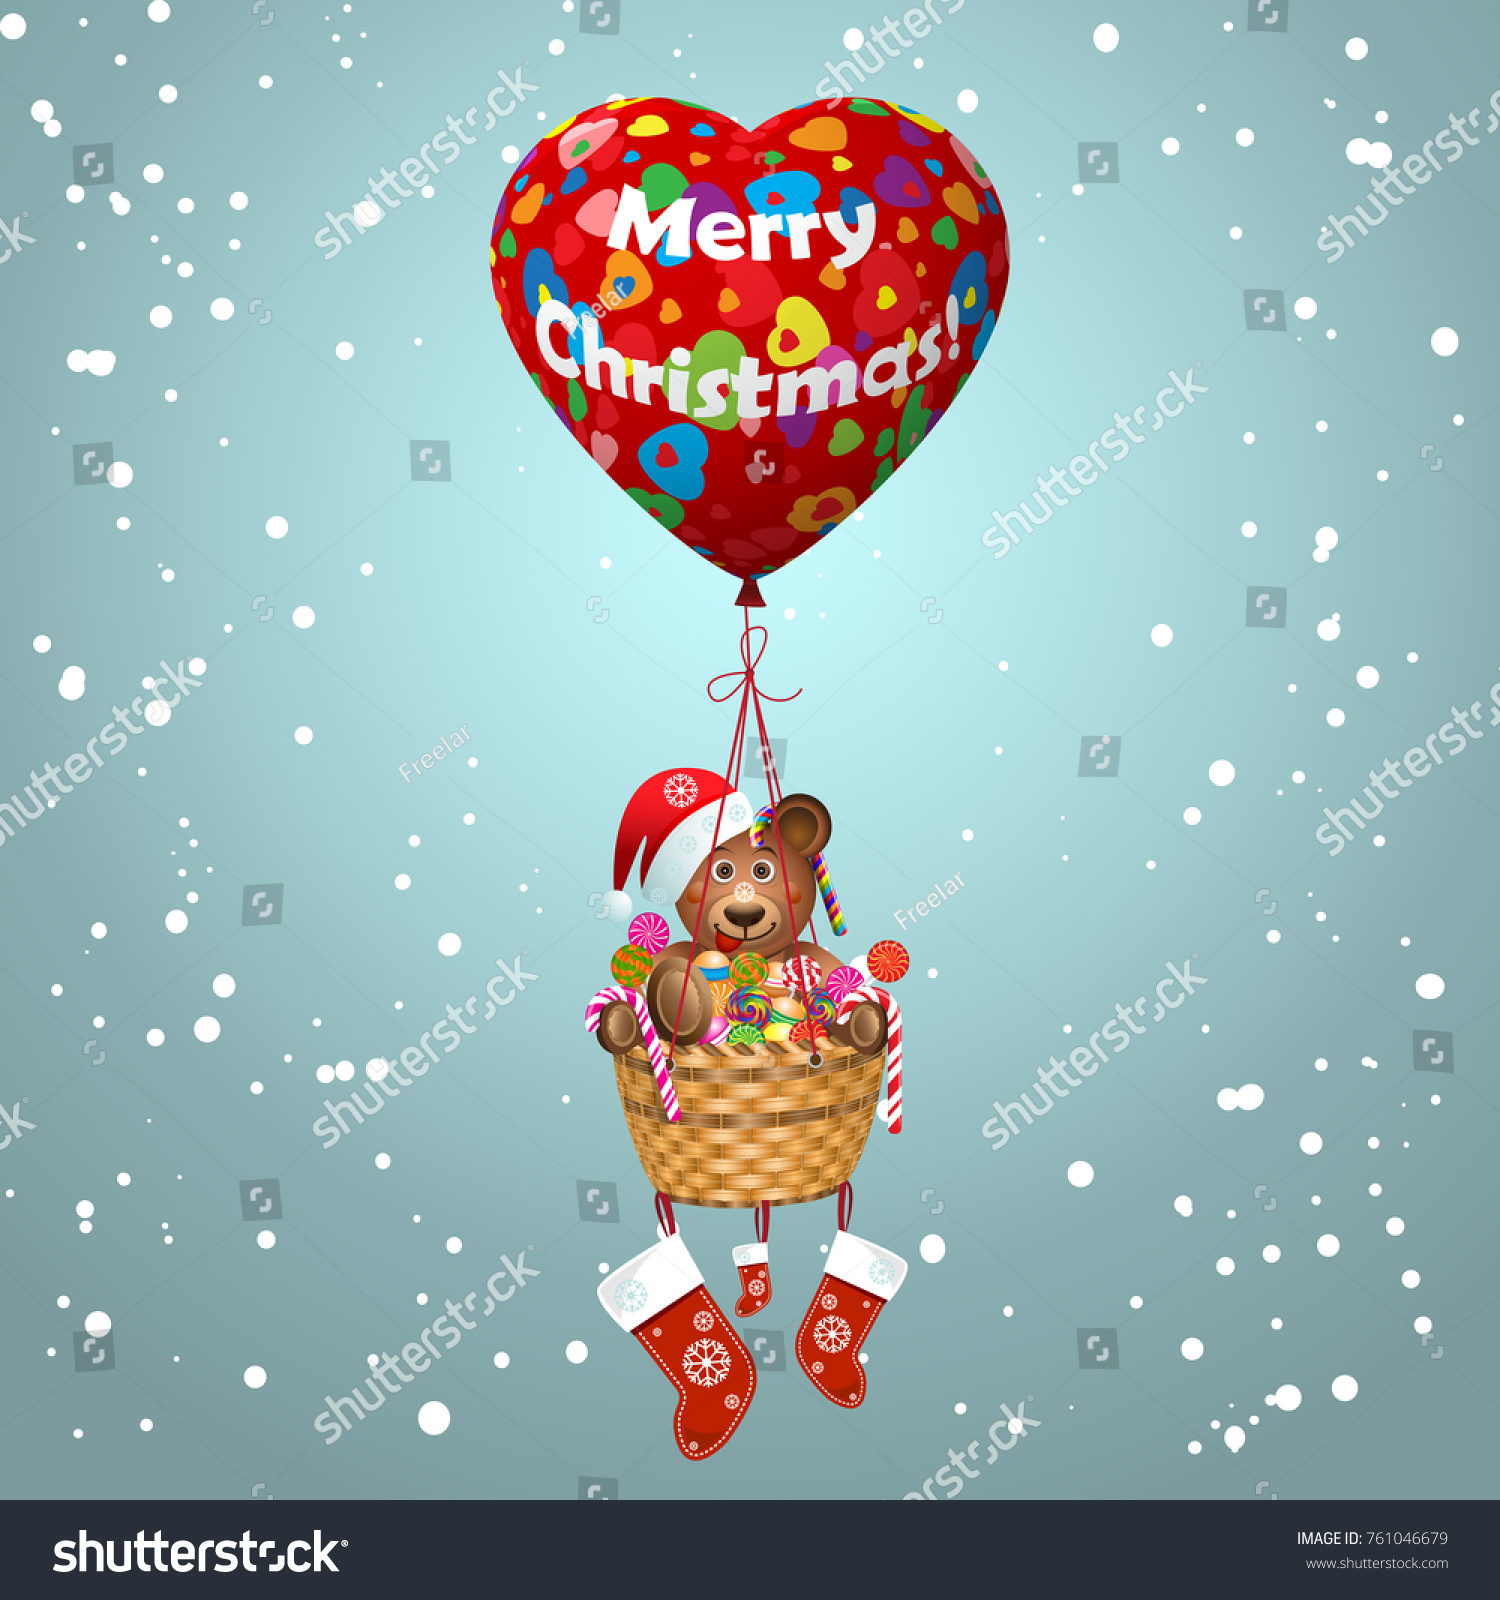 Merry Christmas Card 3 D Heart Shaped Stock Vector (Royalty Free ...